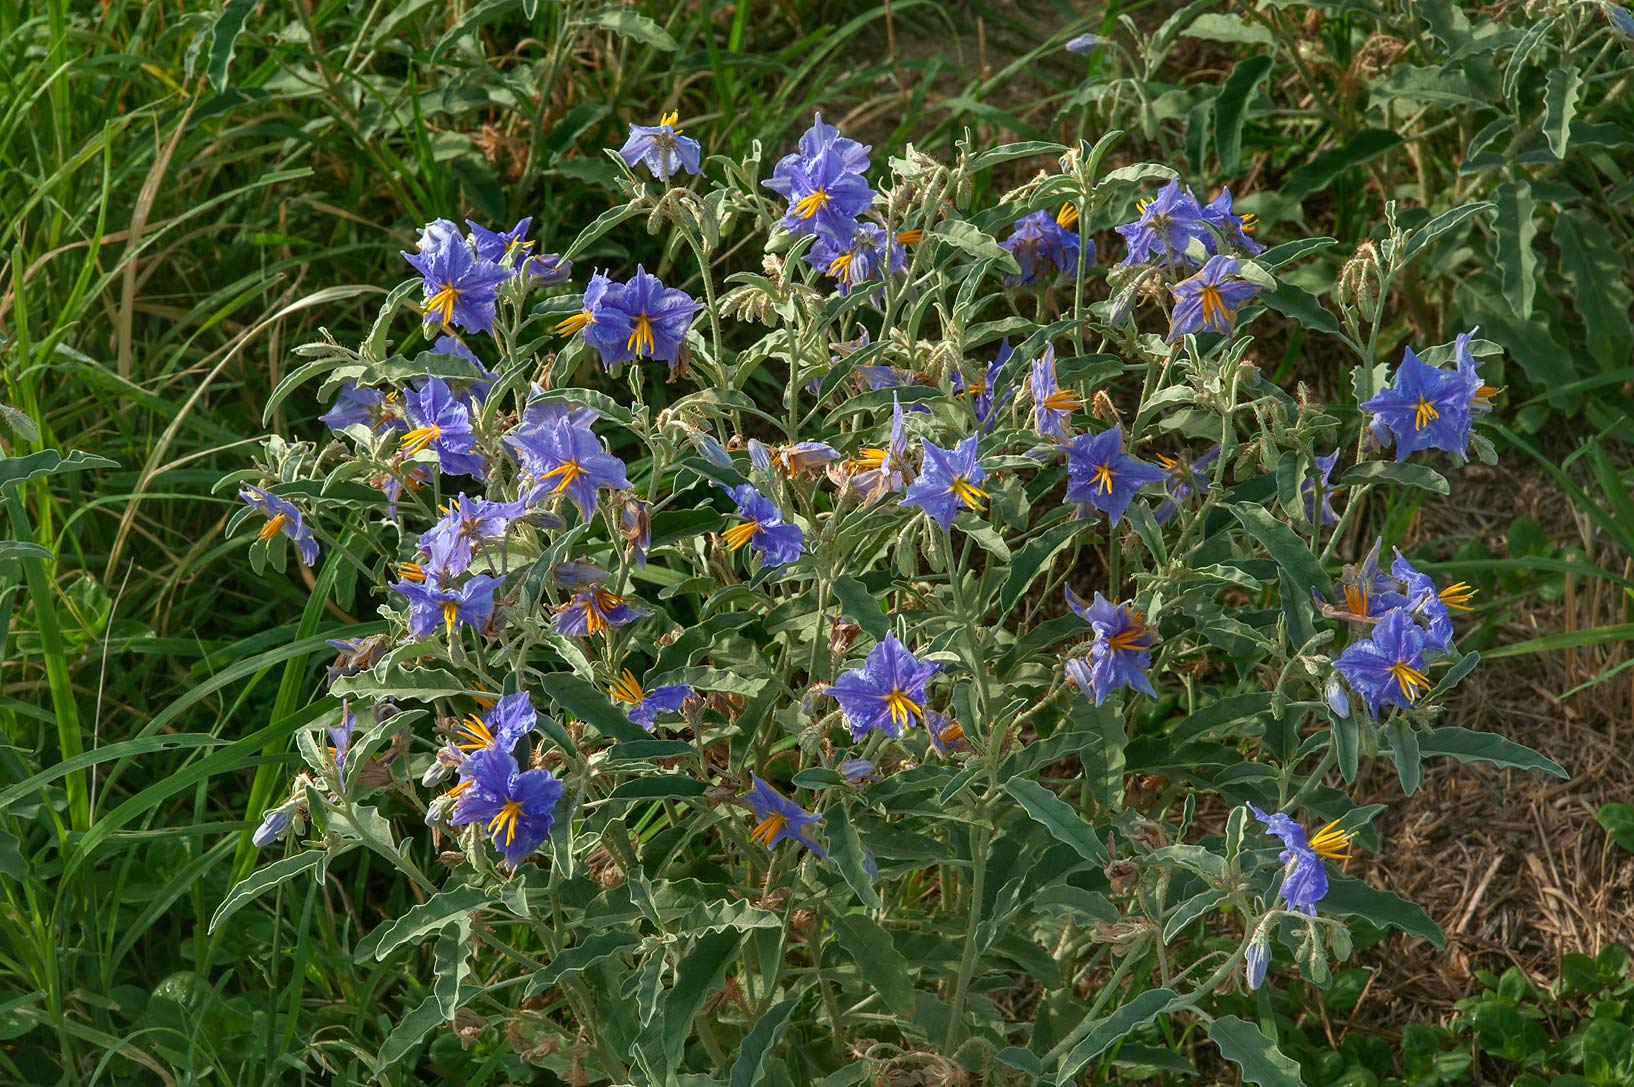 Silverleaf nightshade (Solanum elaeagnifolium) on...in Irkhaya (Irkaya) Farms. Qatar